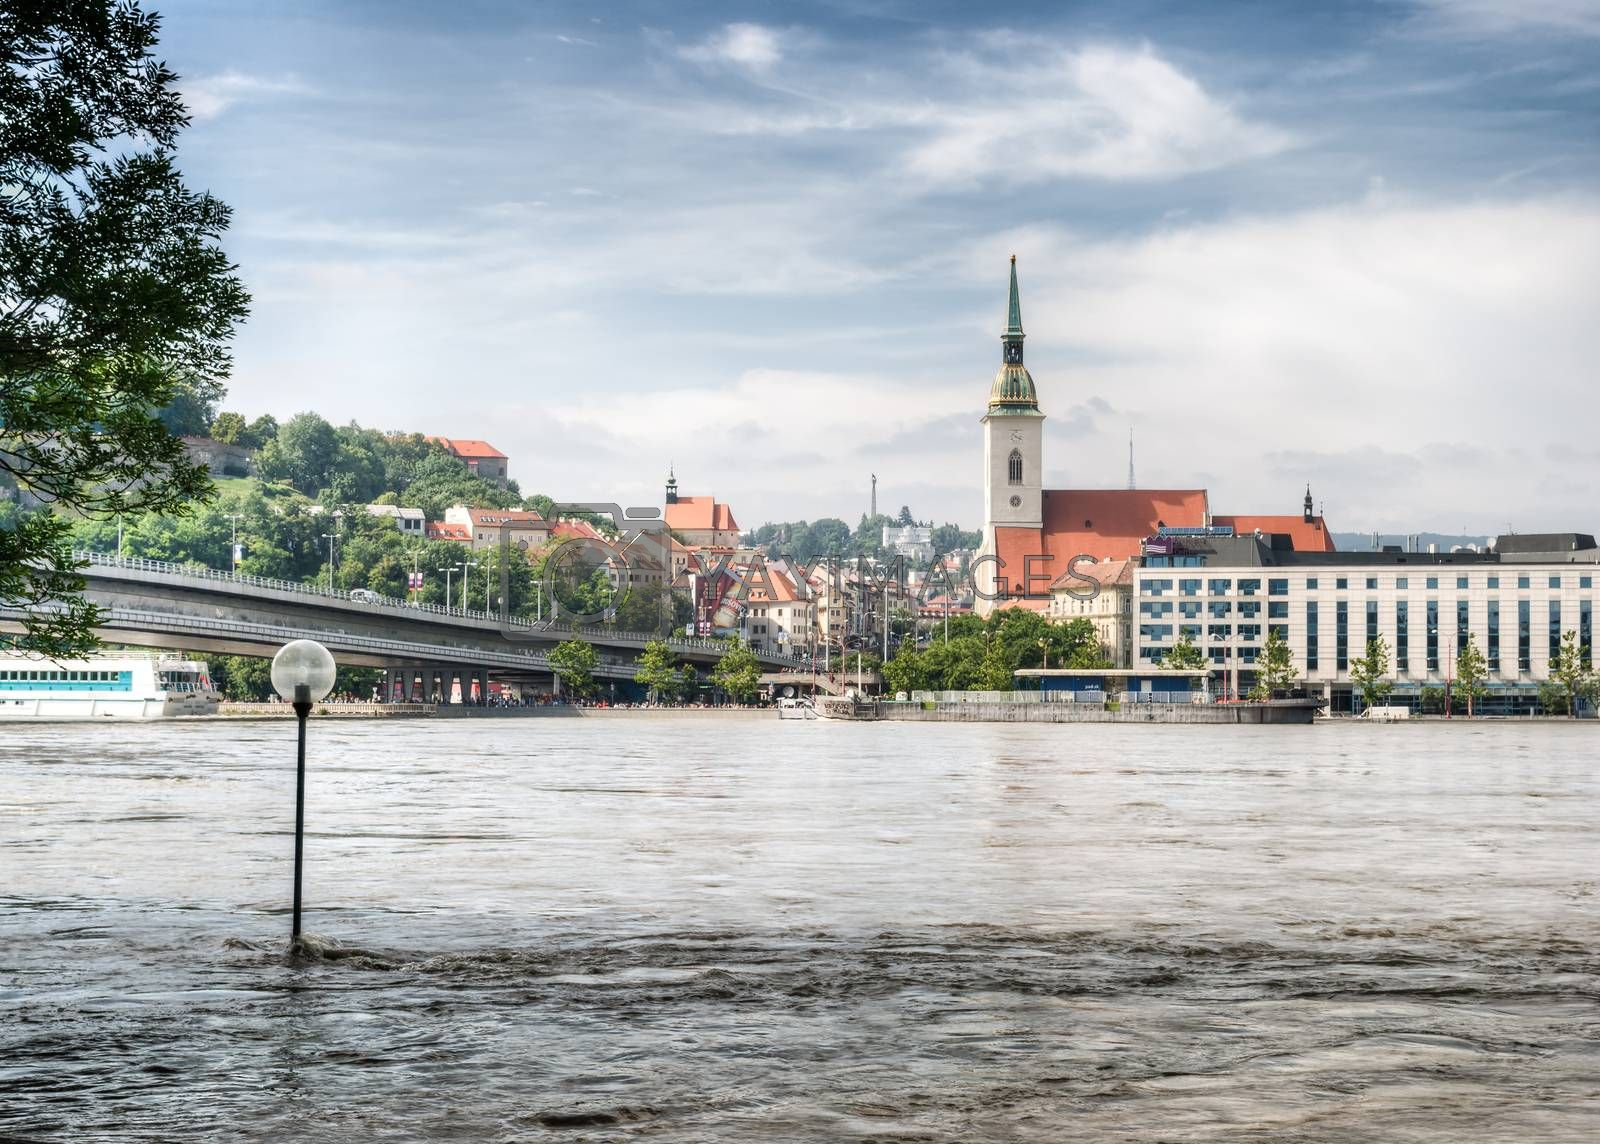 Royalty free image of Flood in the city by Kayco